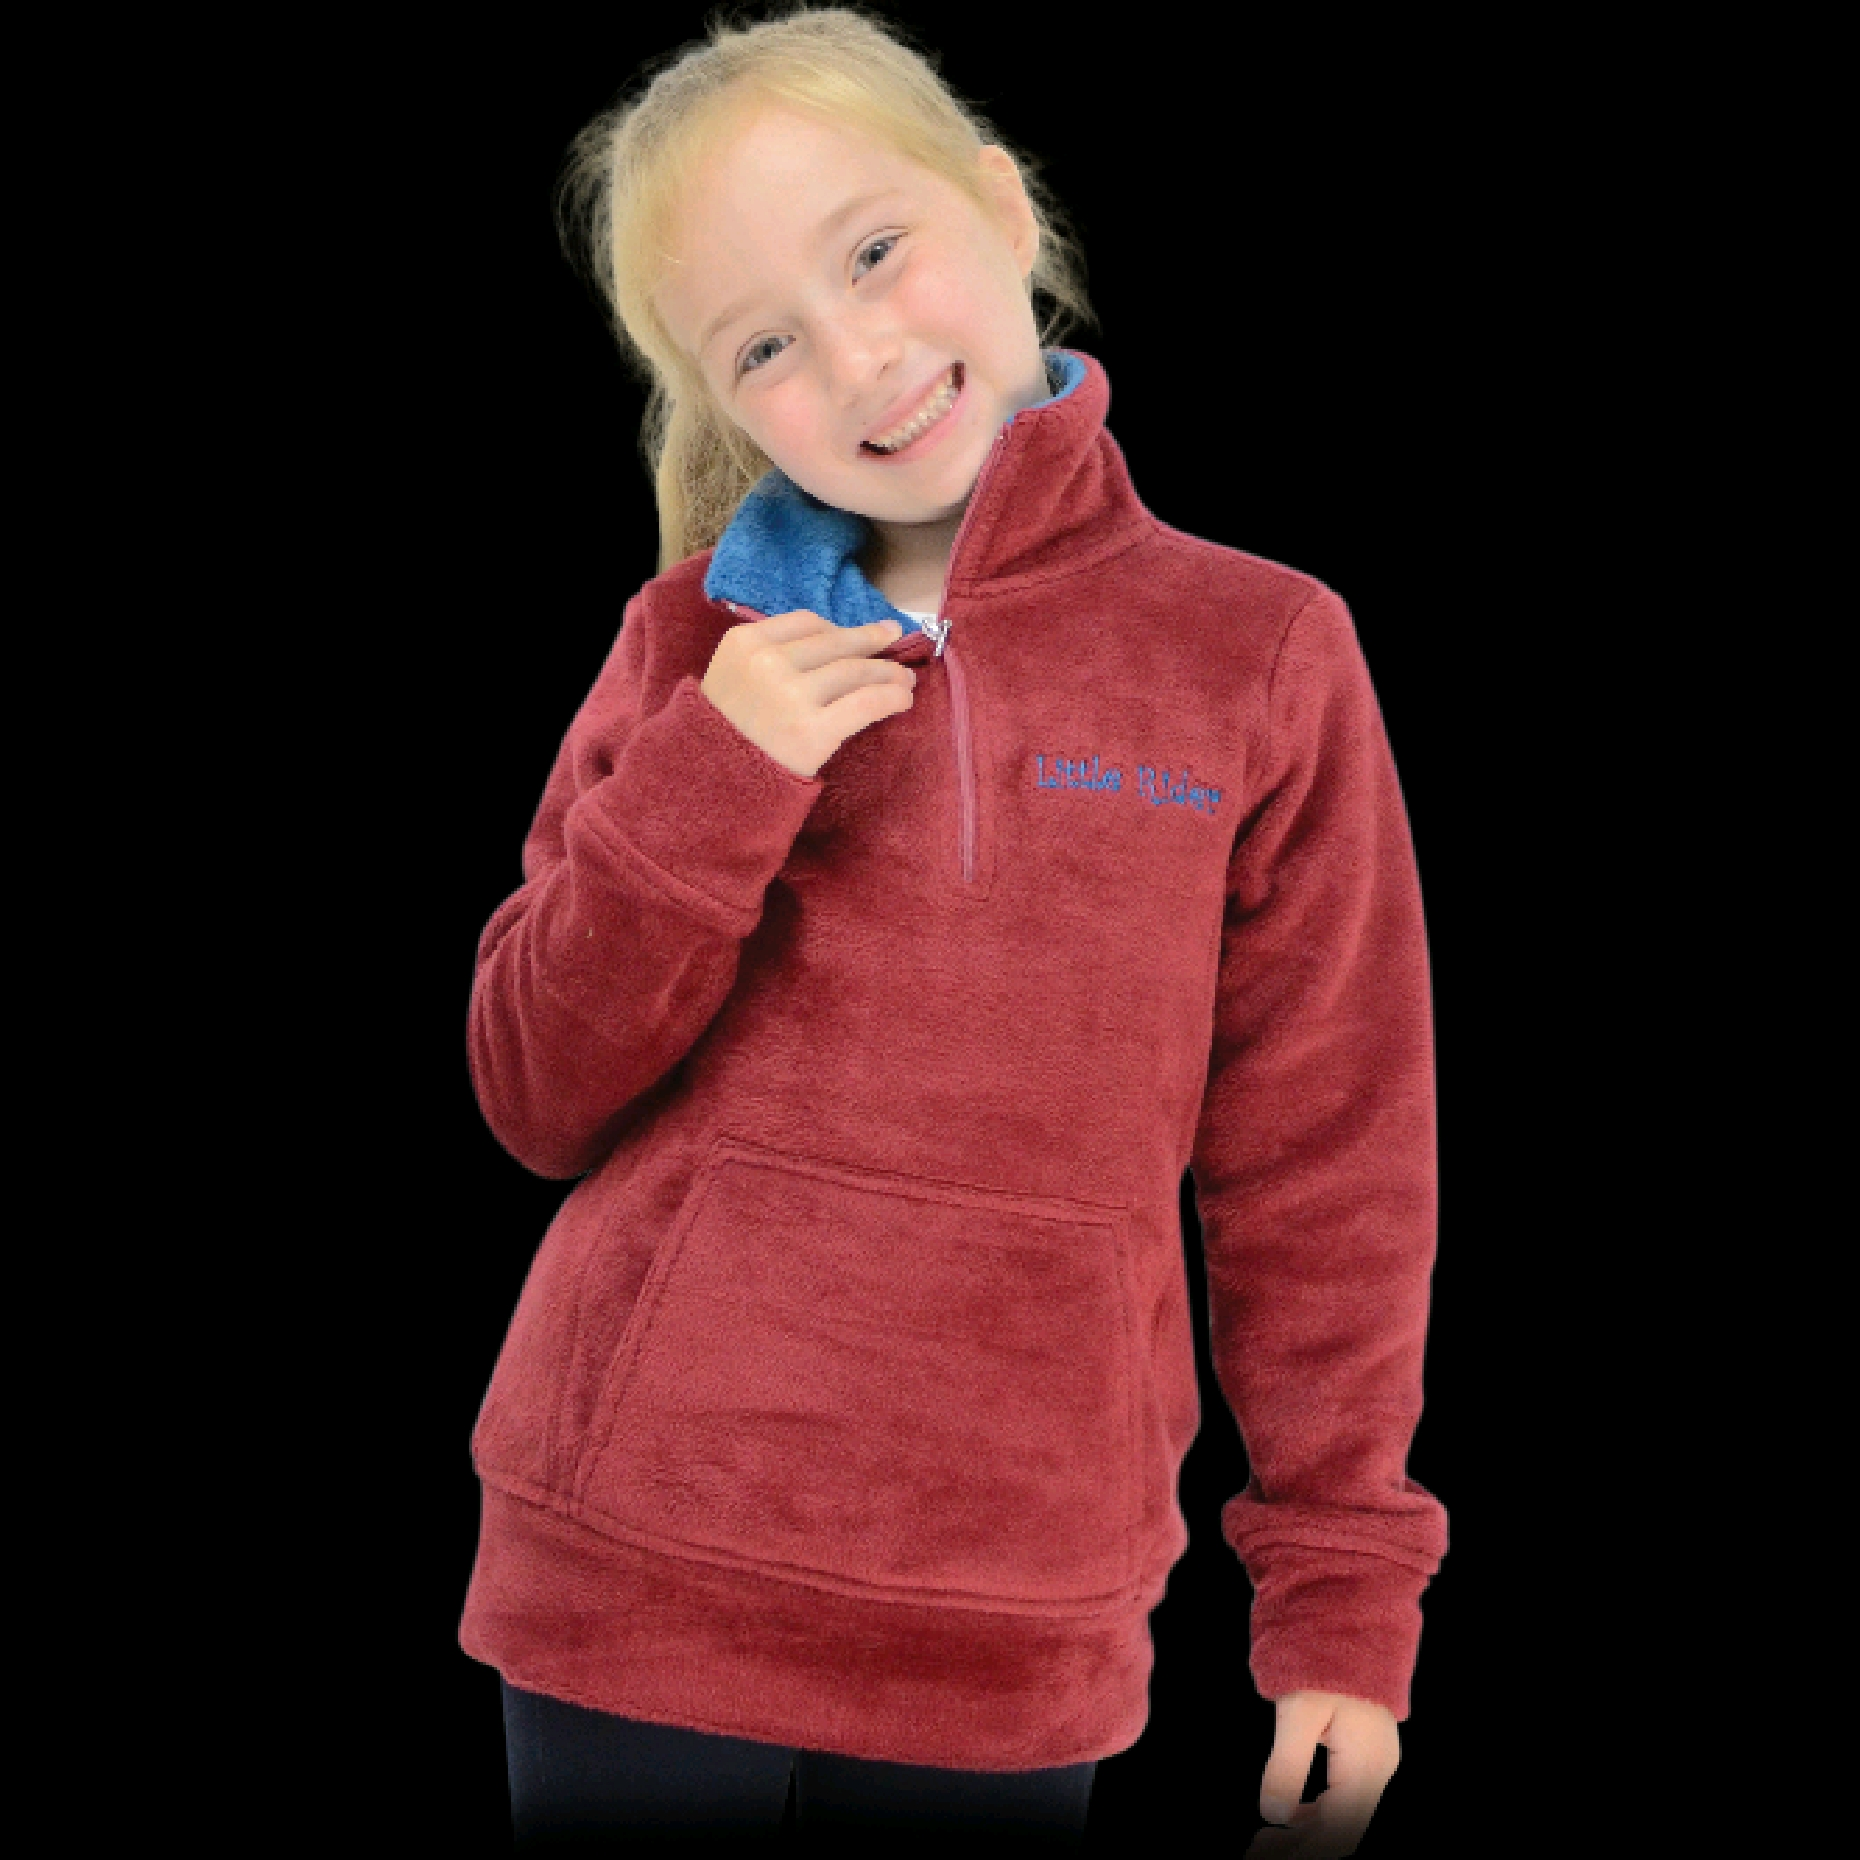 HY Little Rider Childrens Soft Fleece Deep Red/Teal